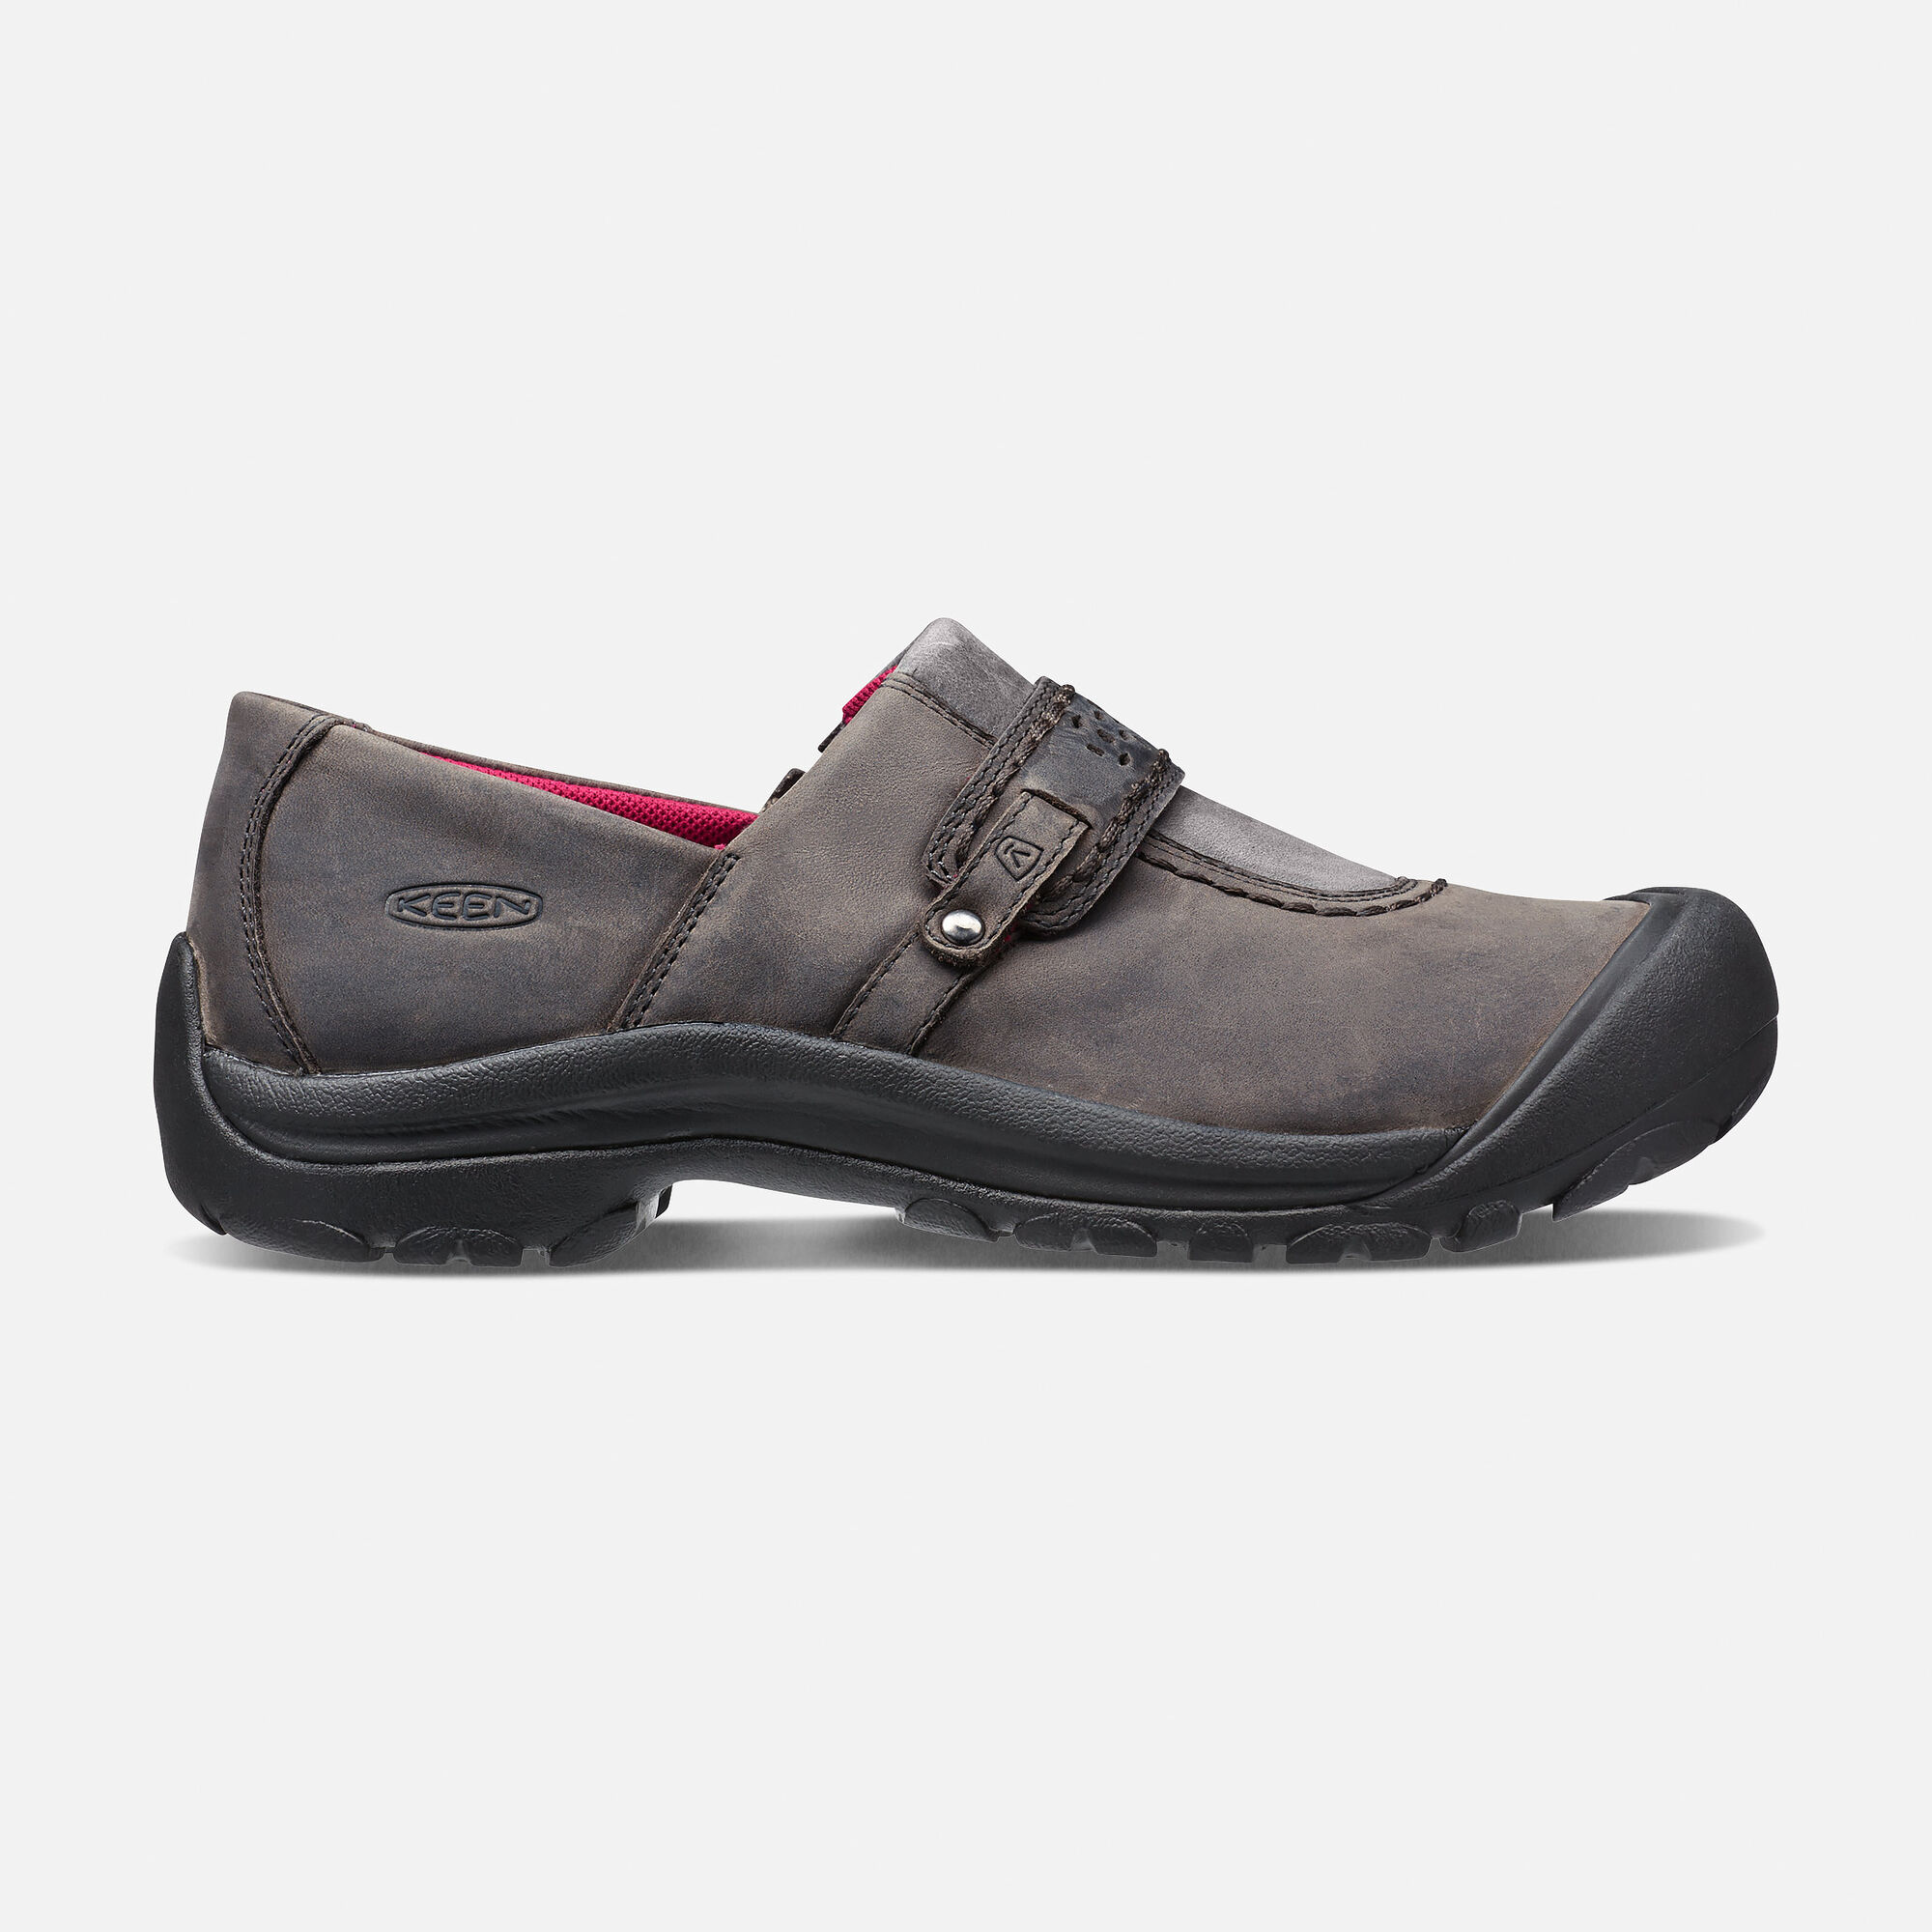 pdp w resistant comforter s on view shoes women footwear magnet grain small p keen full slip in comfortable most kaci